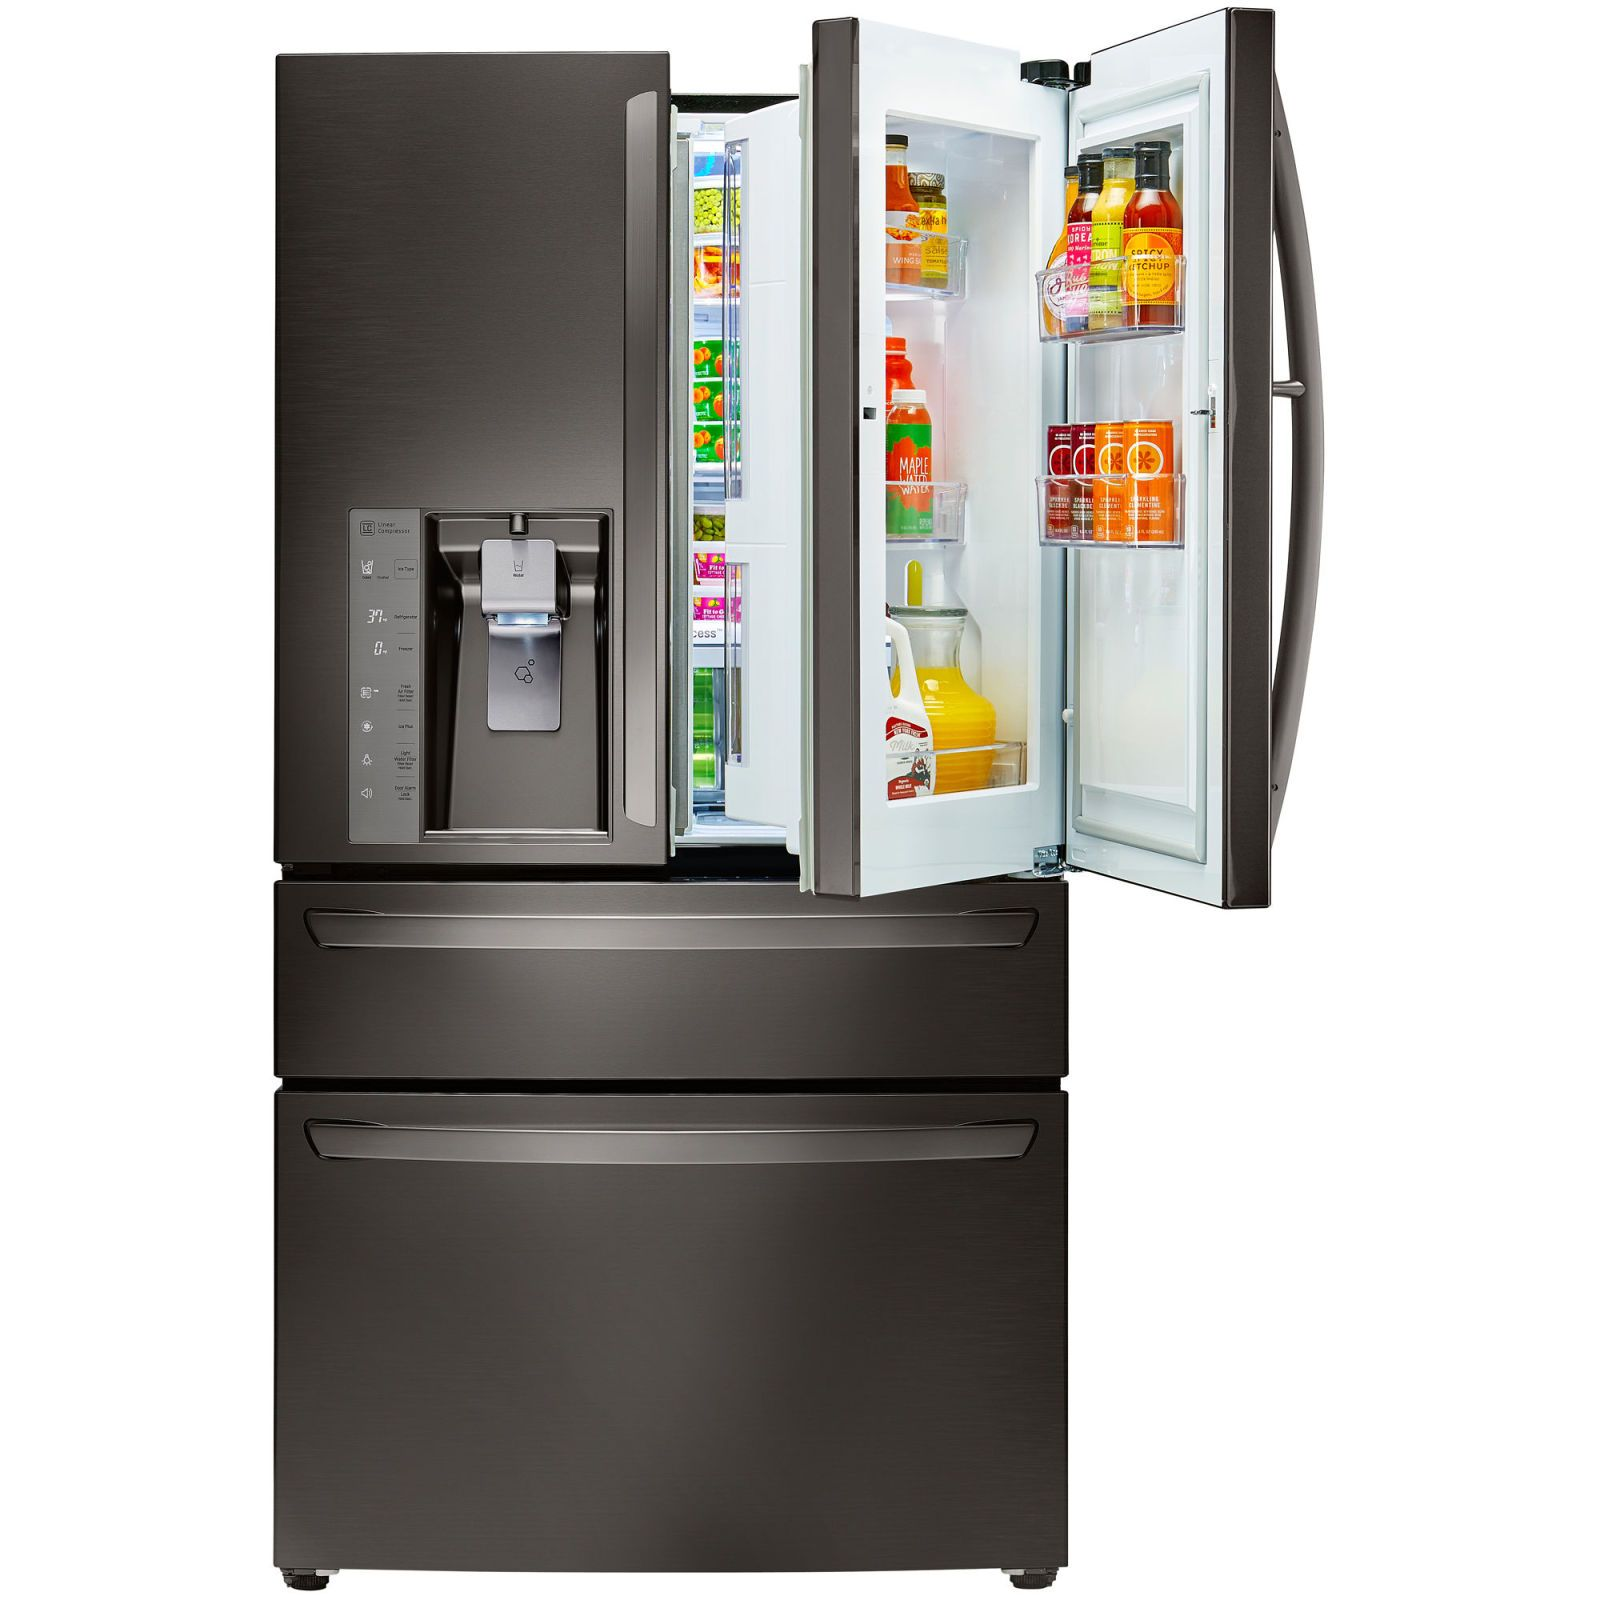 The 18 Best French Door Refrigerators for Optimizing Freshness